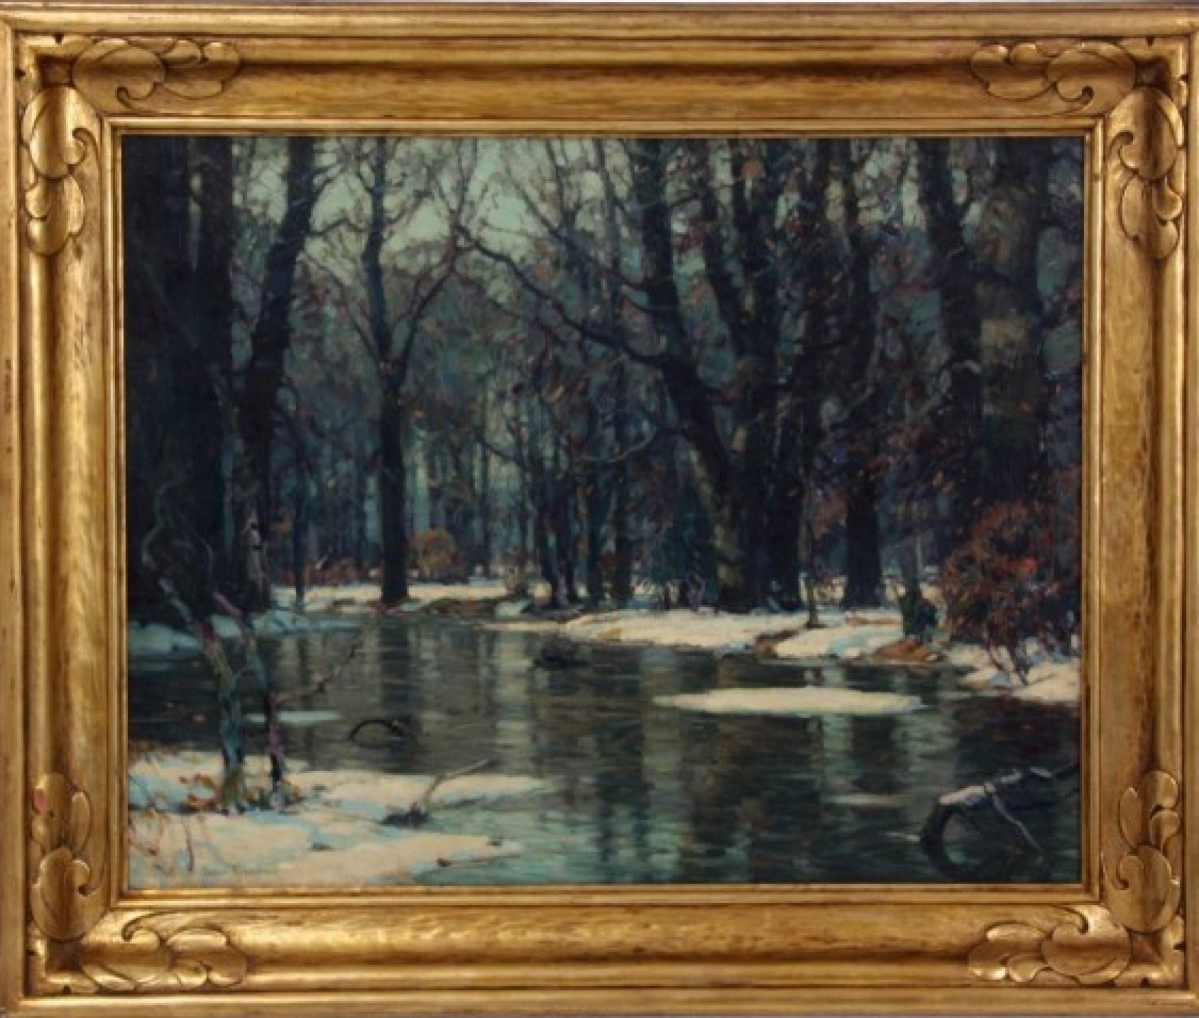 """The highest priced item was """"March Floods,"""" the forest floor covered in melting snow, a detail often found in John Fabian Carlson's works. He was a member of the National Academy and winner of several prestigious prizes. The Impressionistic forest landscape finished at $34,943."""